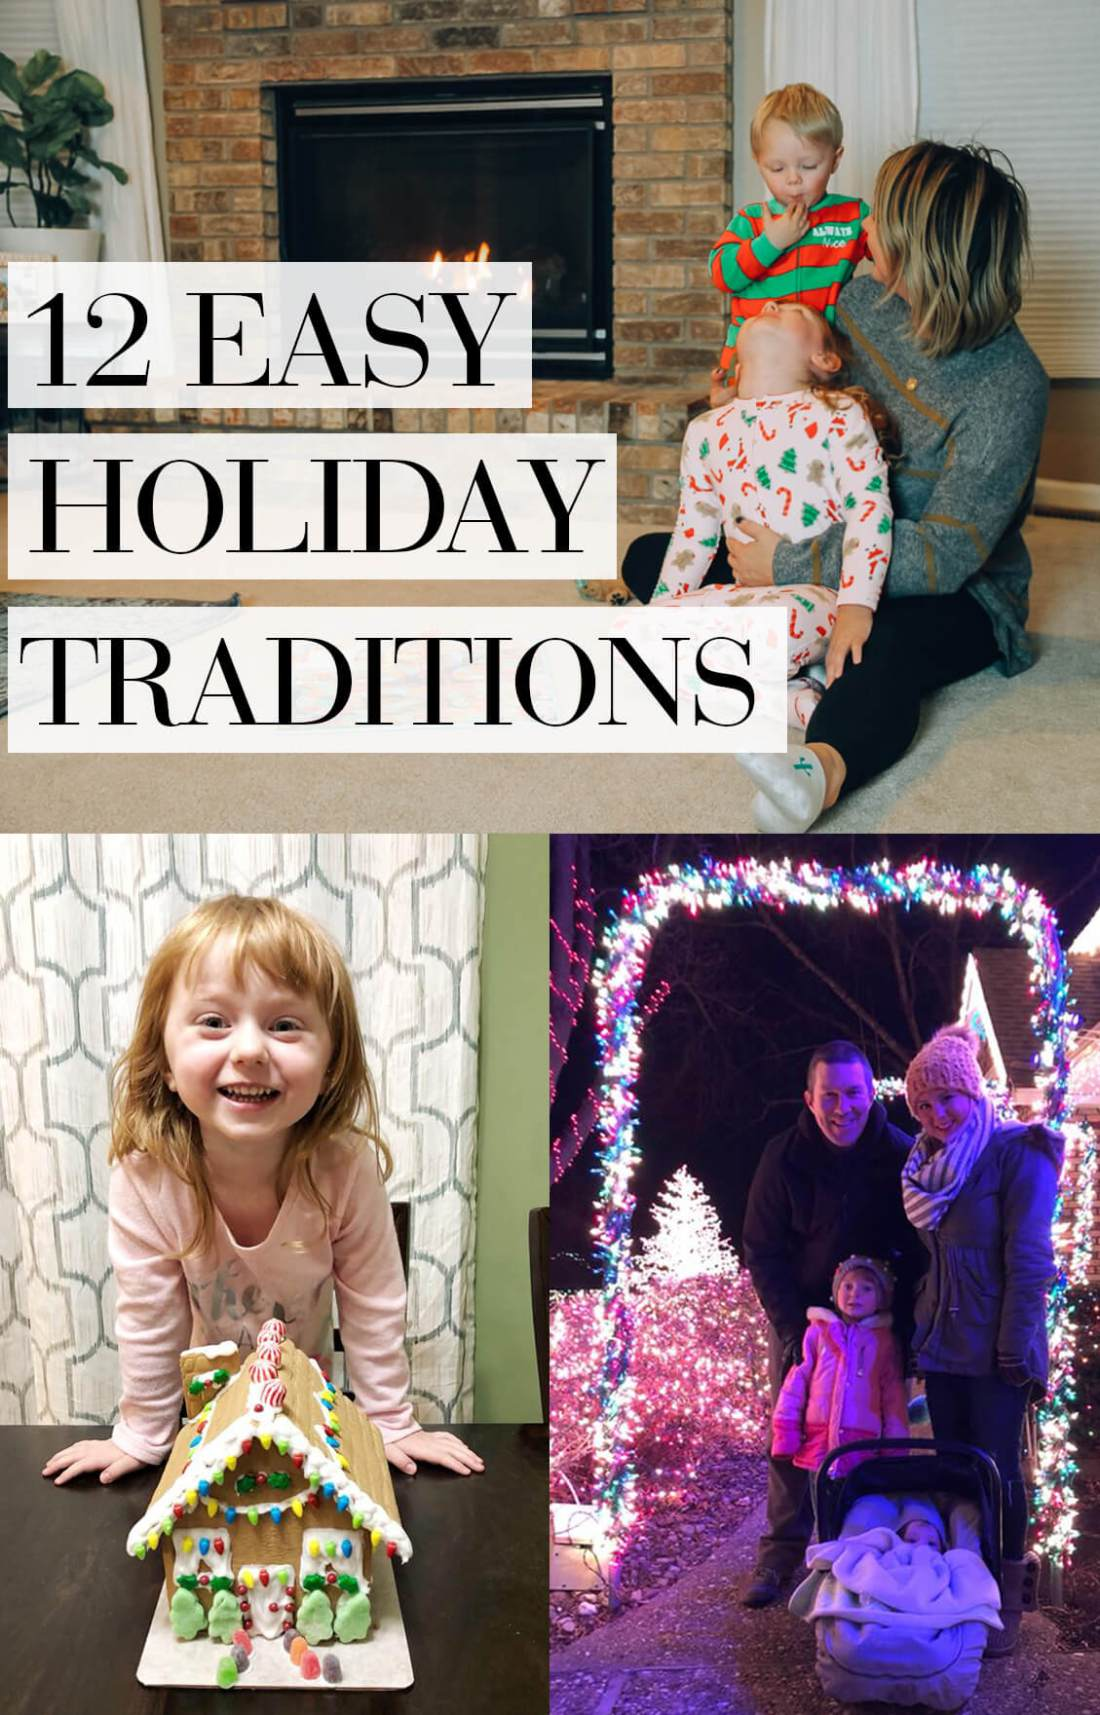 12 easy holiday traditions